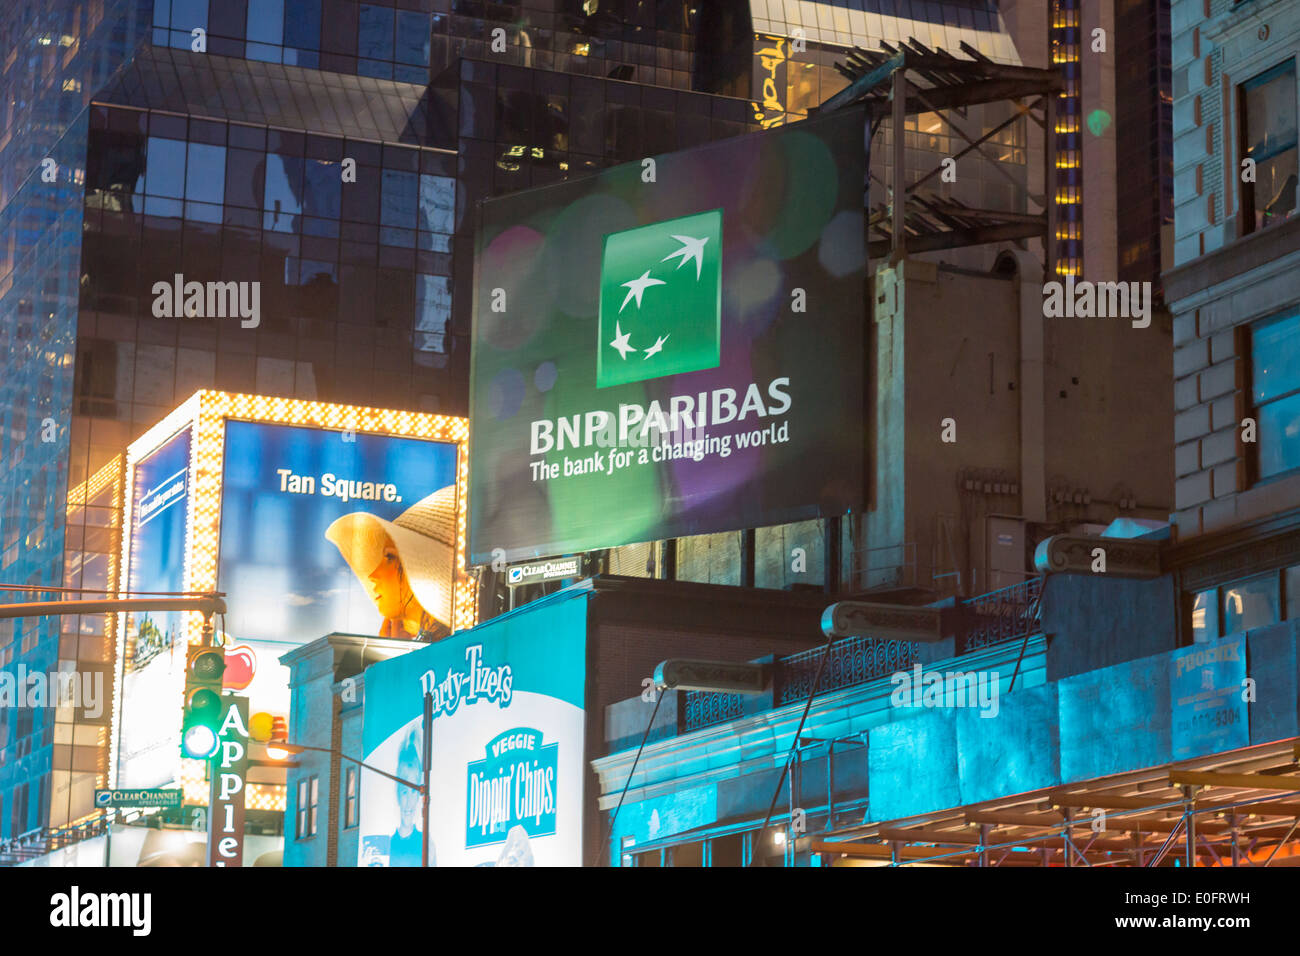 Advertising for the French bank, BNP Paribas, is seen in New York - Stock Image